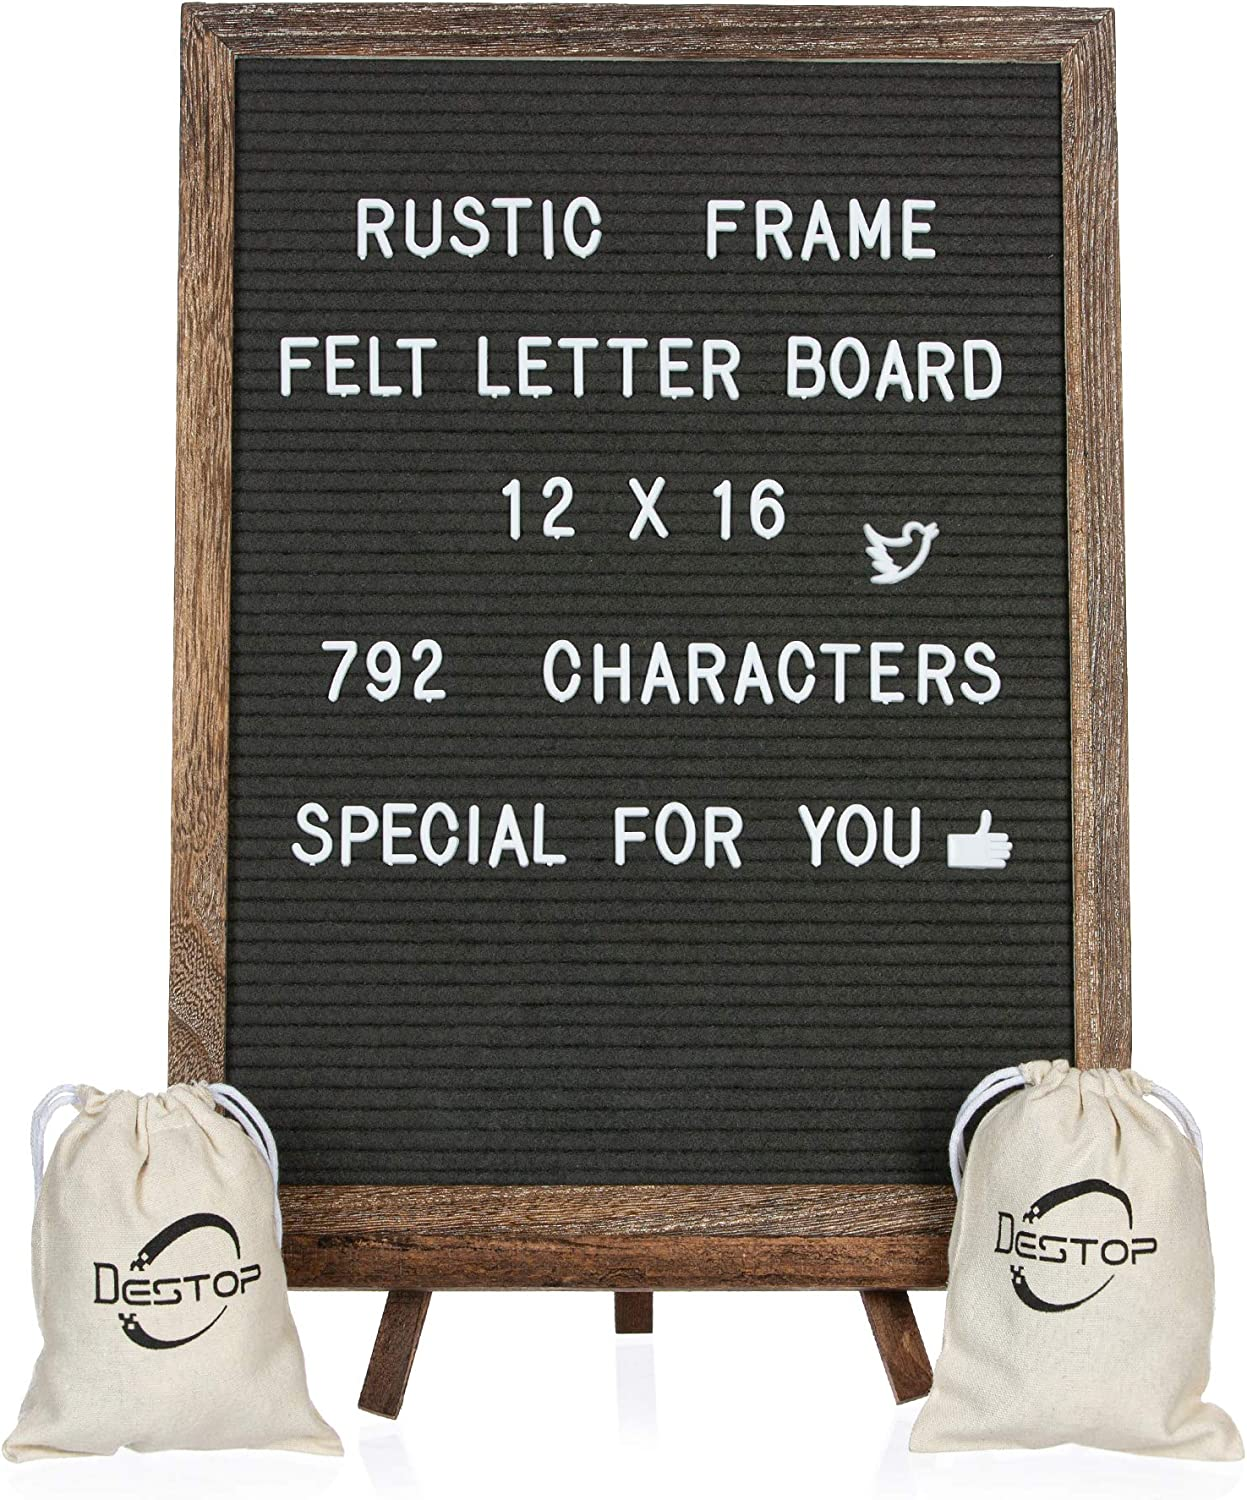 Felt Letter Board with Rustic Vintage Frame and Stand 12x16 inch, Dark Grey Changeable Letter and Message Board Includes 792 Letters, Numbers and Symbols, Hook to Hang, 2 Canvas Bags: Office Products